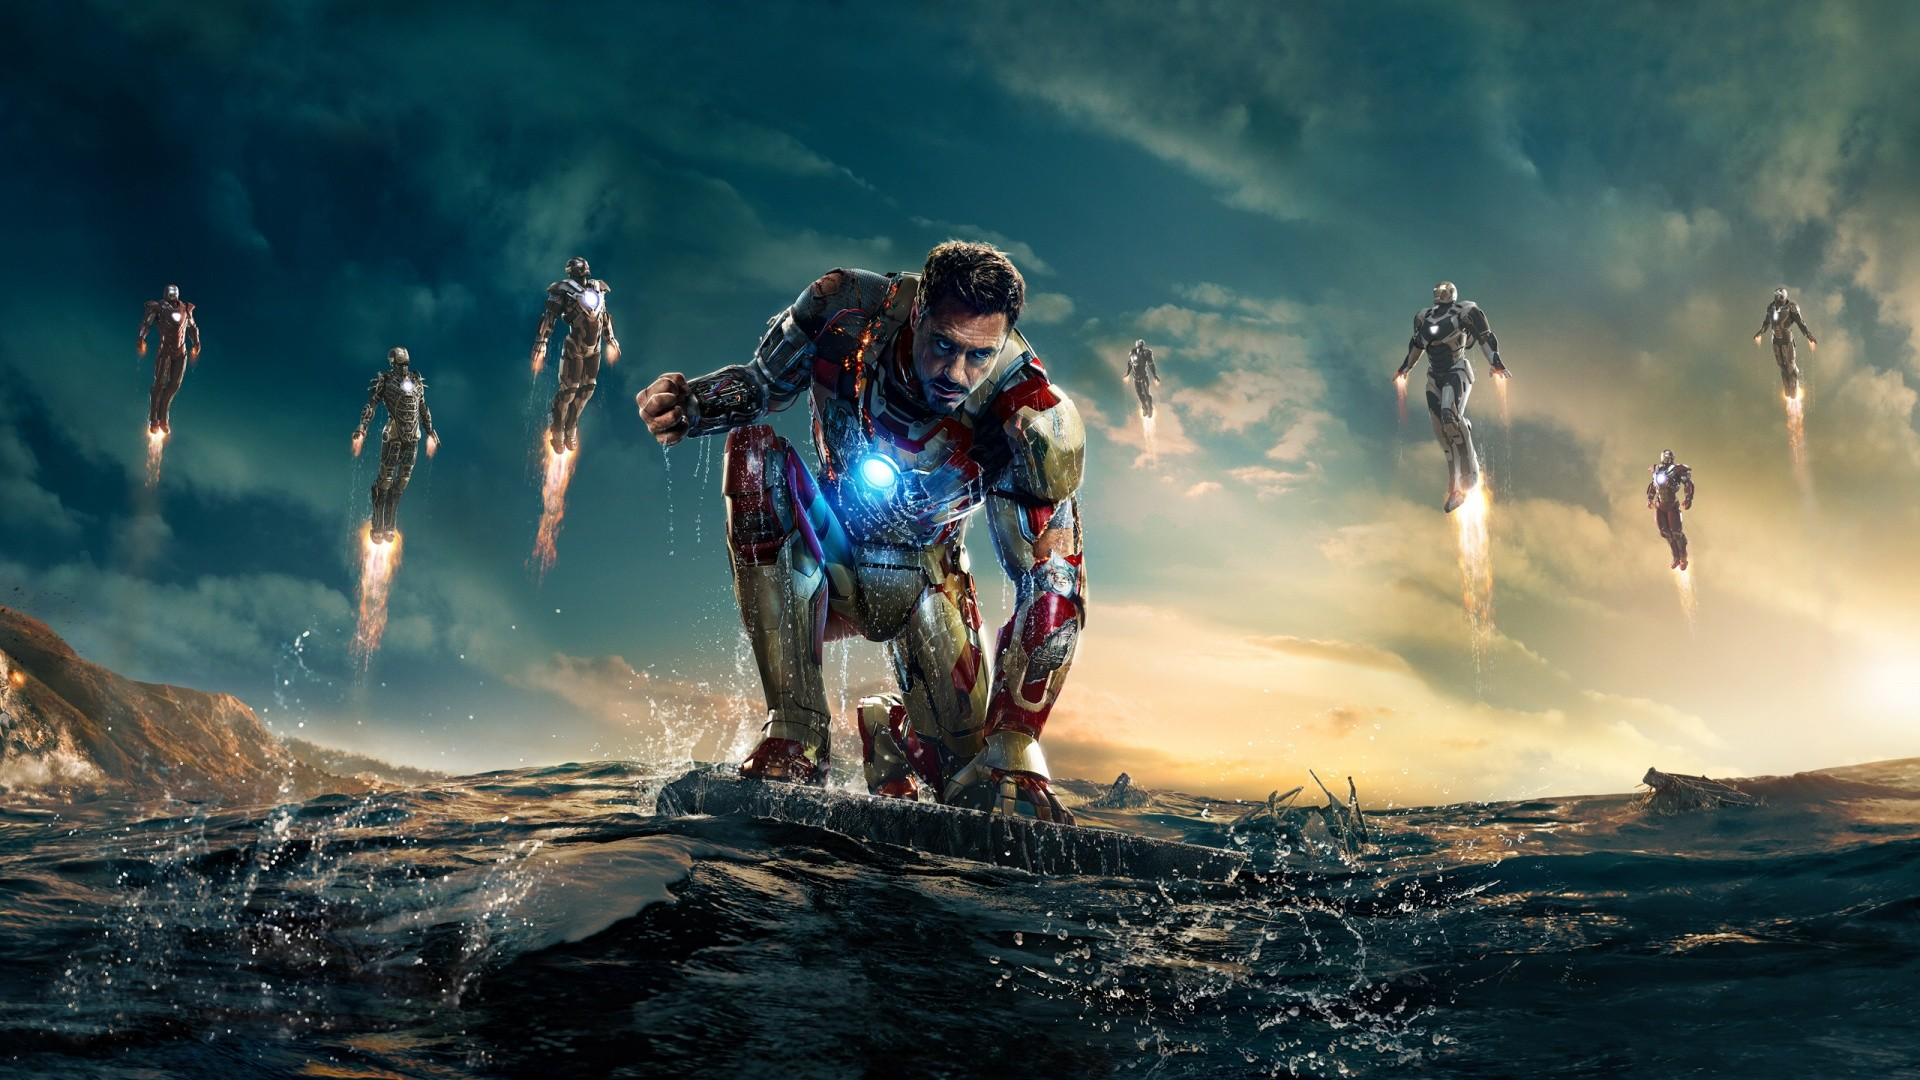 1920x1080 Ultra HD Iron Man HD 4K Pics ()